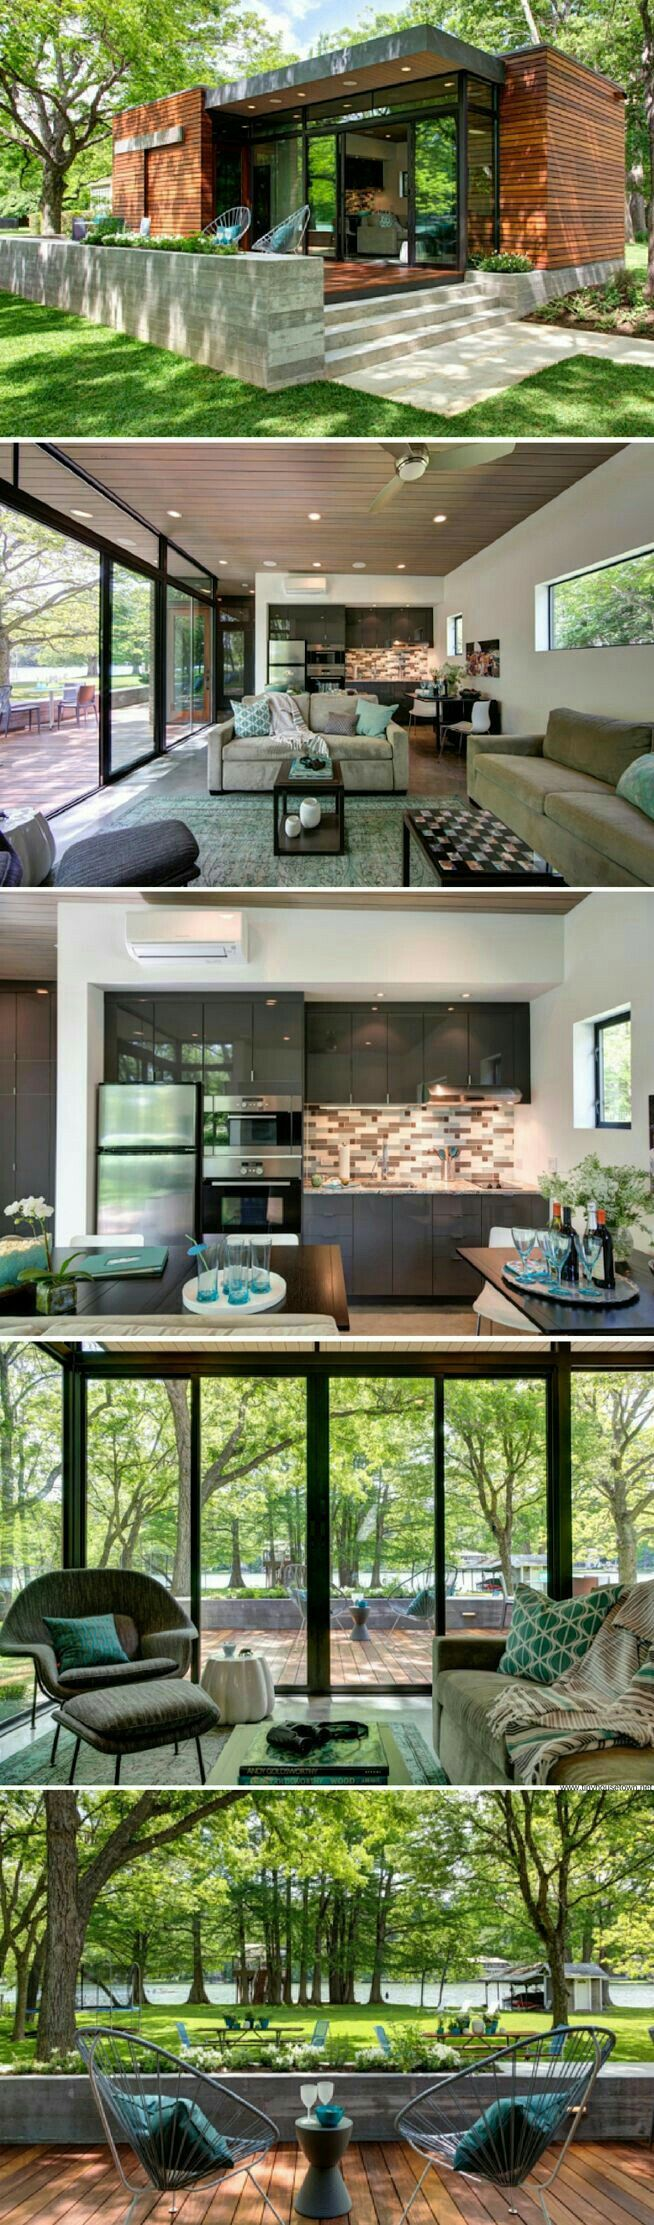 Nowadays Tiny Houses Design become popular again